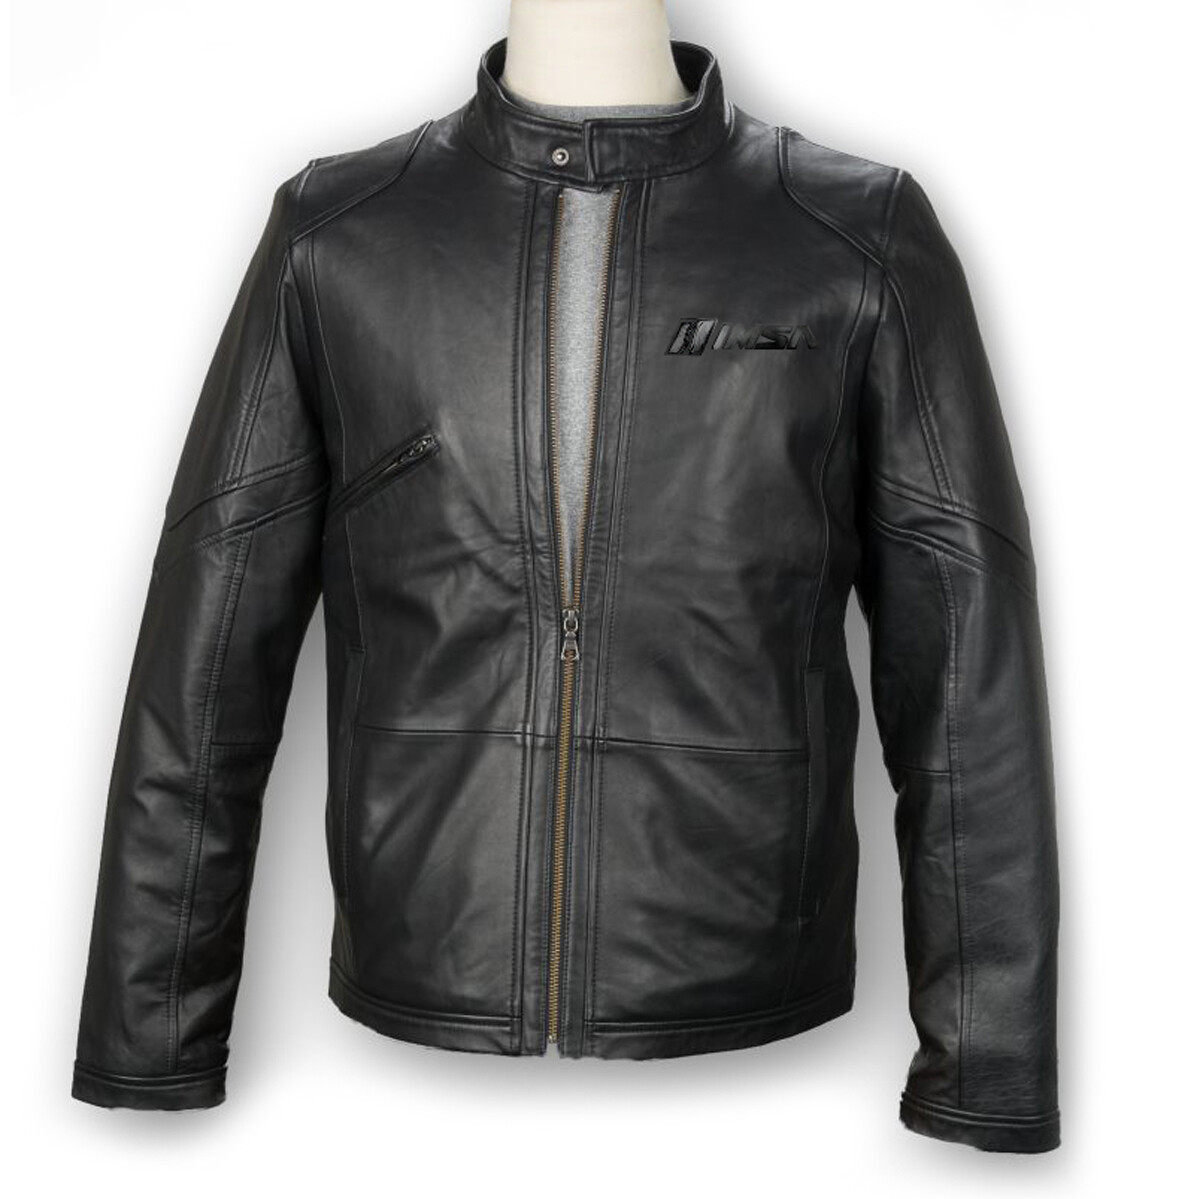 IMSA Lambskin Leather Driving Jacket- Black